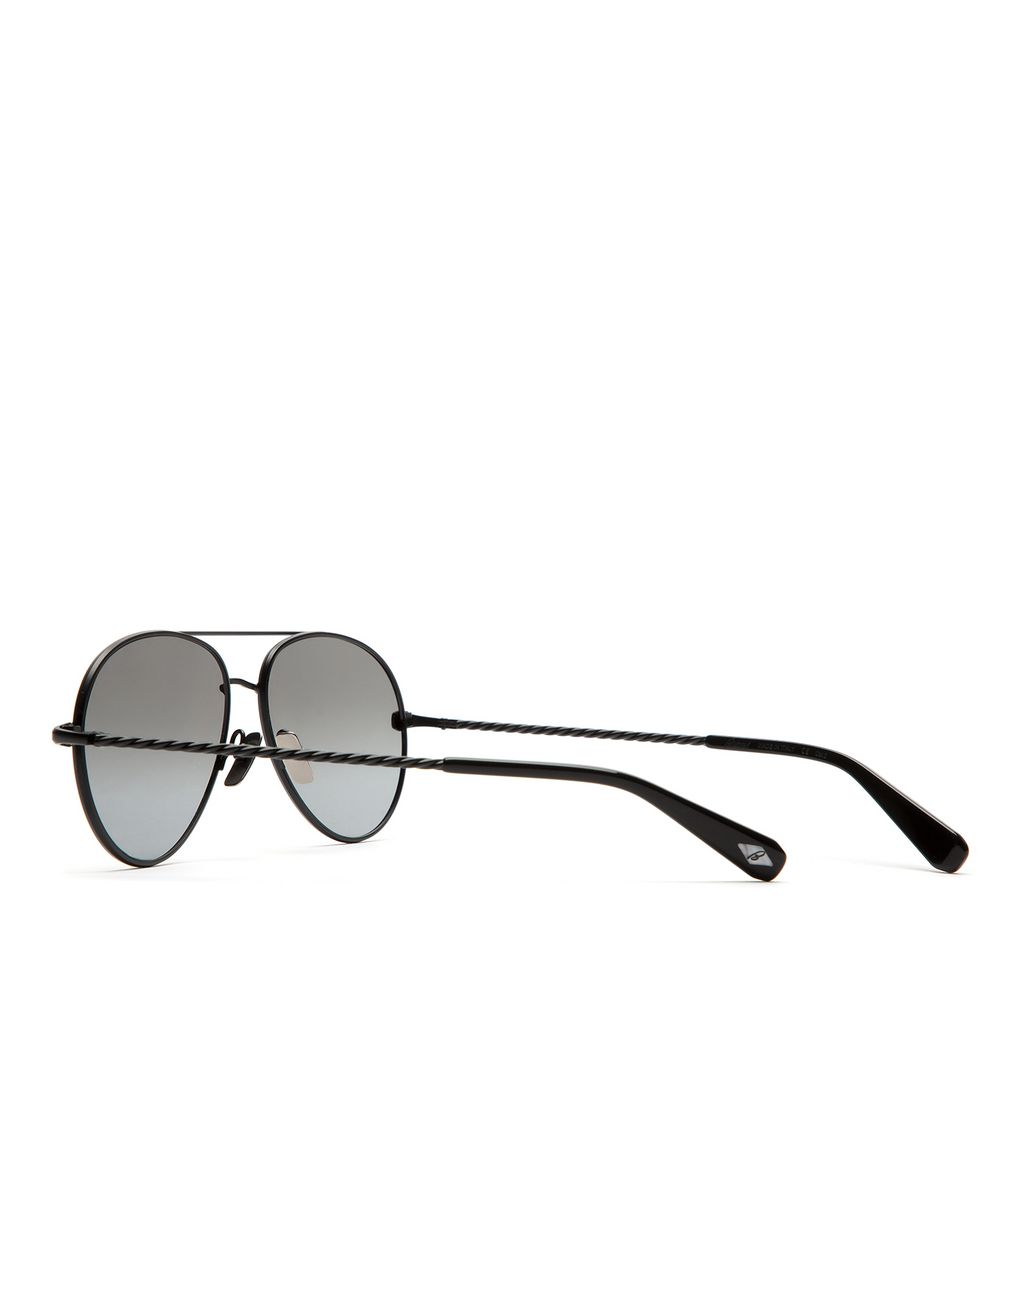 BRIONI Silver Black Aviator Sunglasses with Gray Lenses Sunglasses [*** pickupInStoreShippingNotGuaranteed_info ***] d